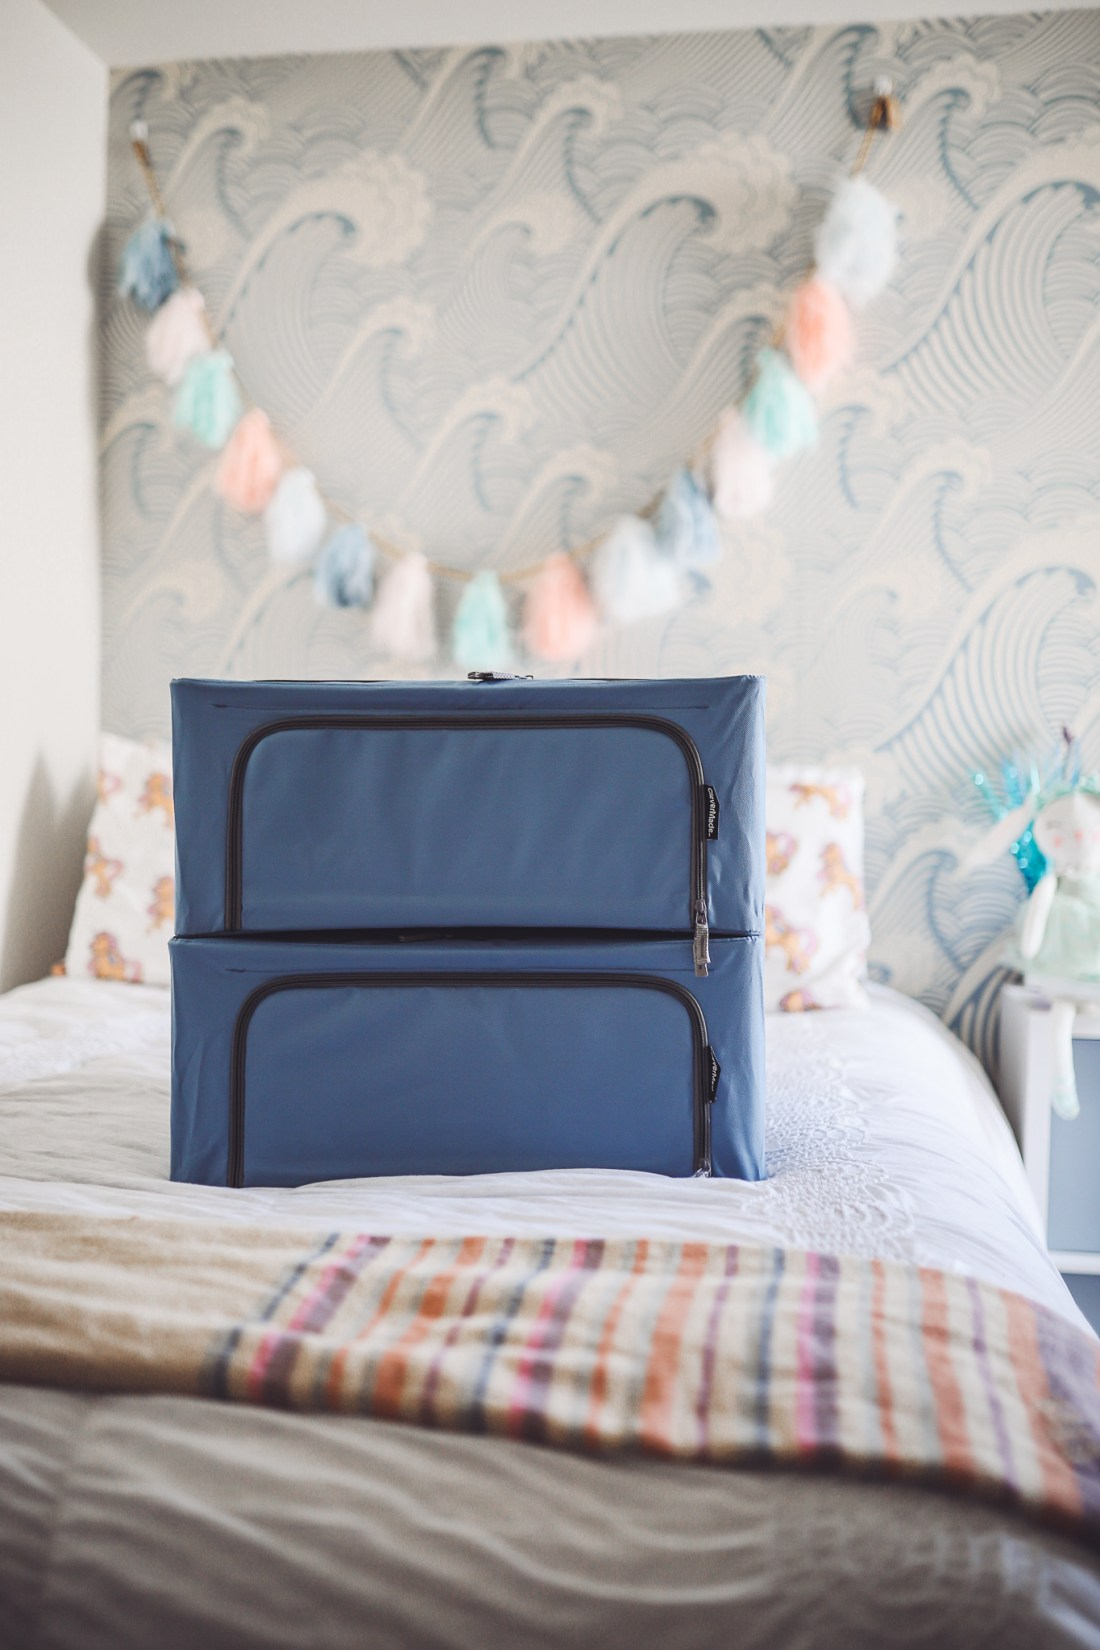 Purging Tips by popular Nashville lifestyle blog, Modern Day Moguls: image of two blue storage bins stacked on top of each other on a bed.